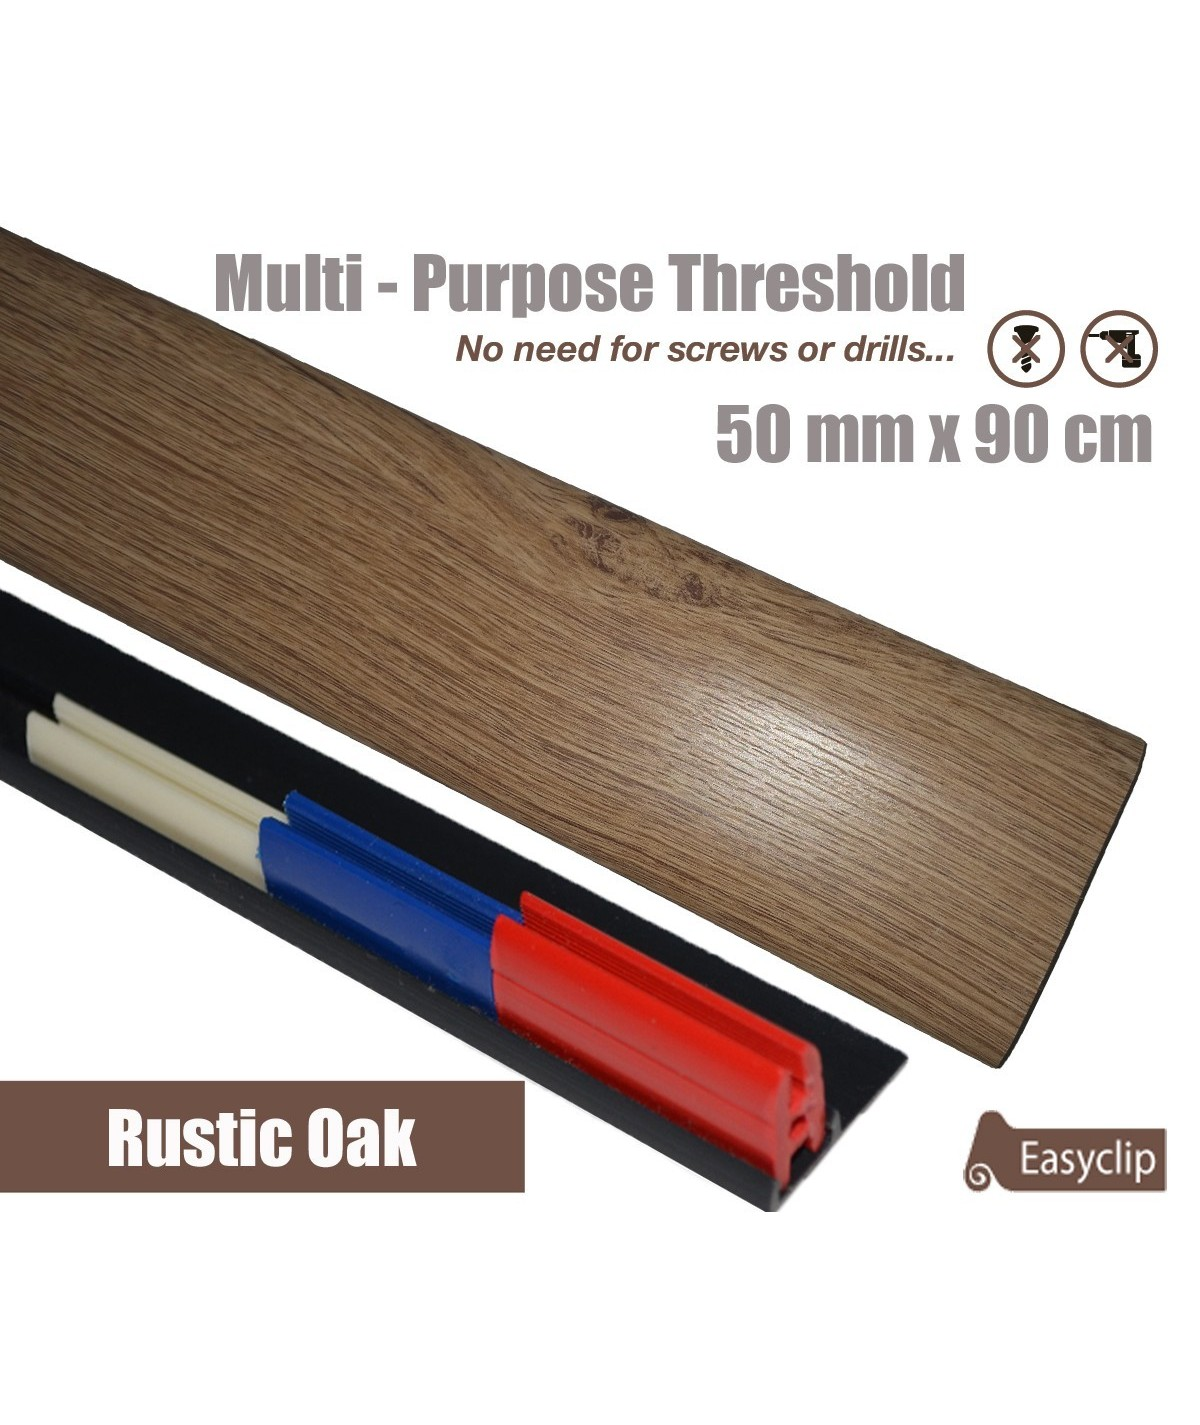 Rustic Oak Laminated Transition Threshold Strip 50mm x 90cm Multi-Height/Pivots